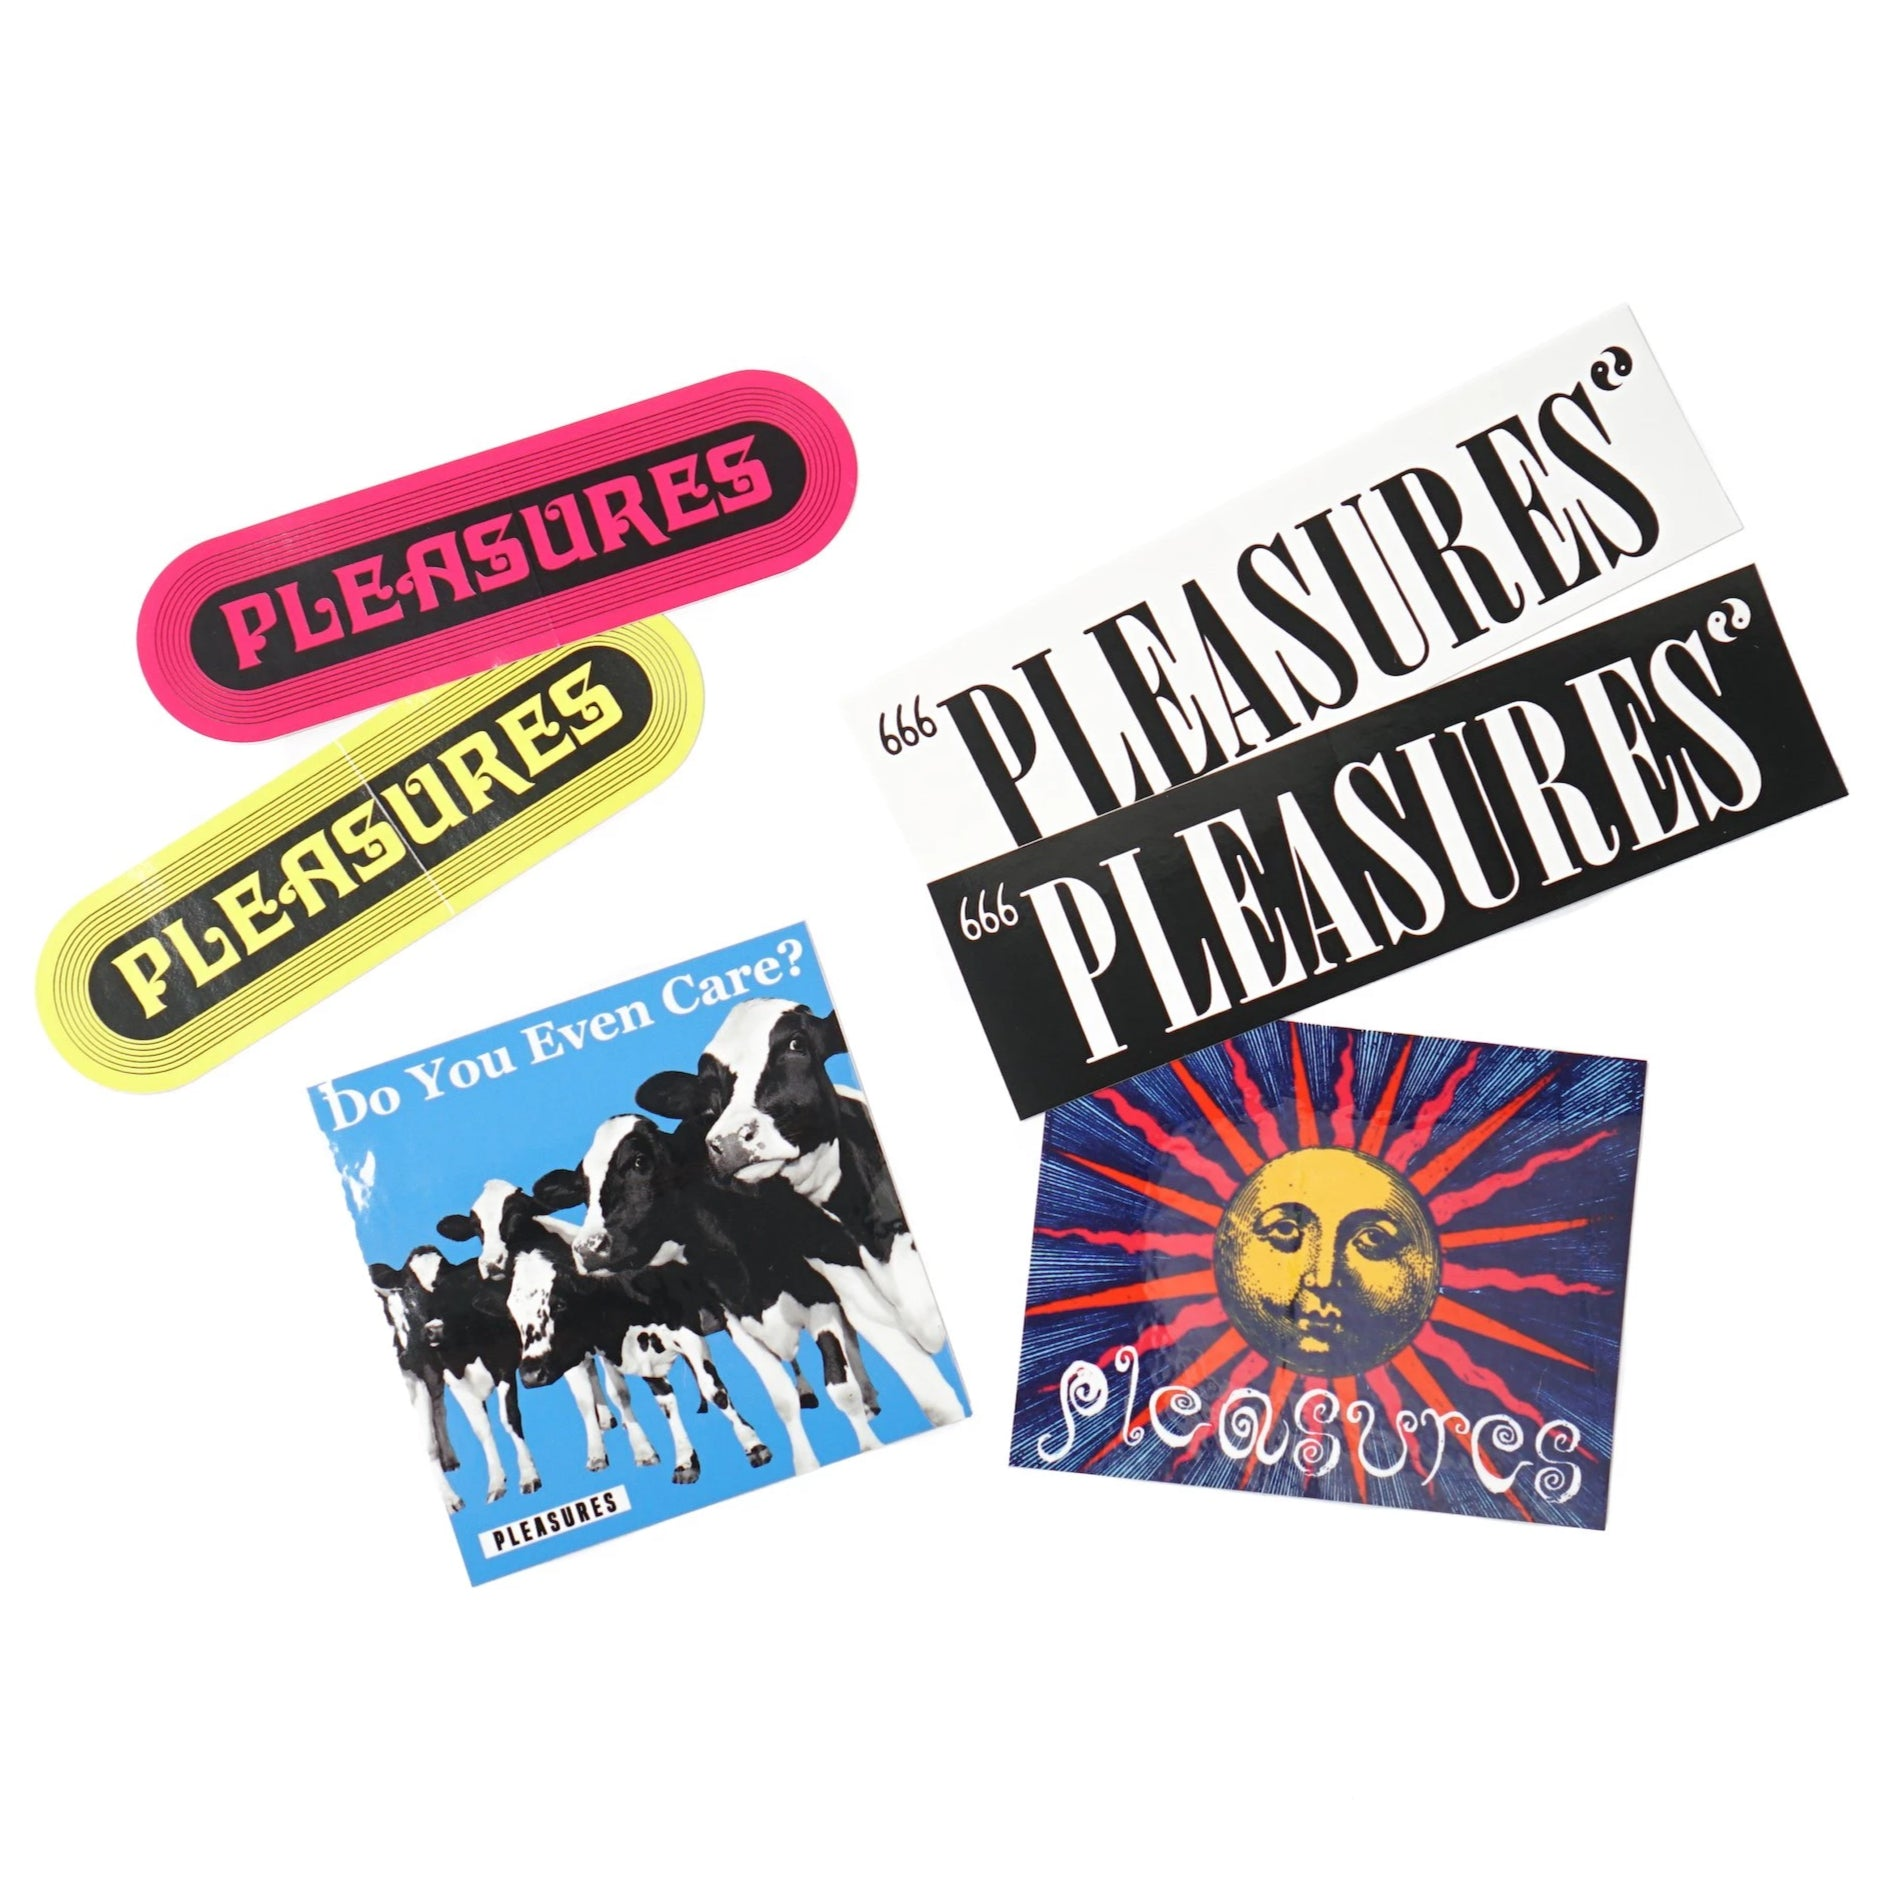 Pleasures Summer 2019 Sticker Pack (6 Stickers)